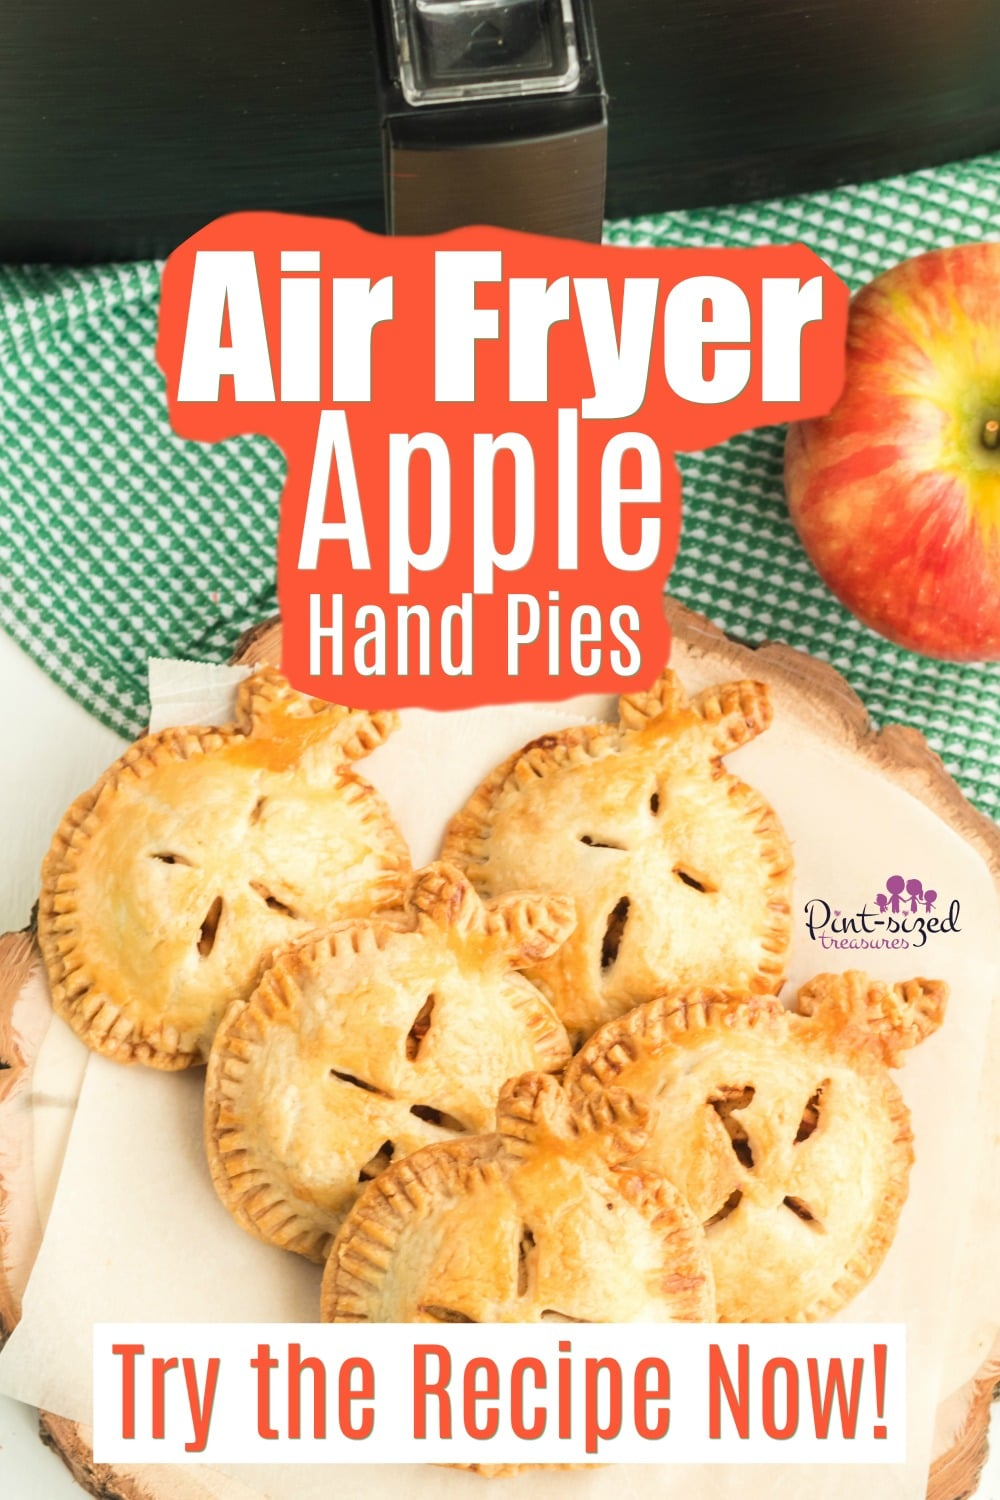 Apple Hand Pies that are made in the Air Fryer are Seriously Easy!